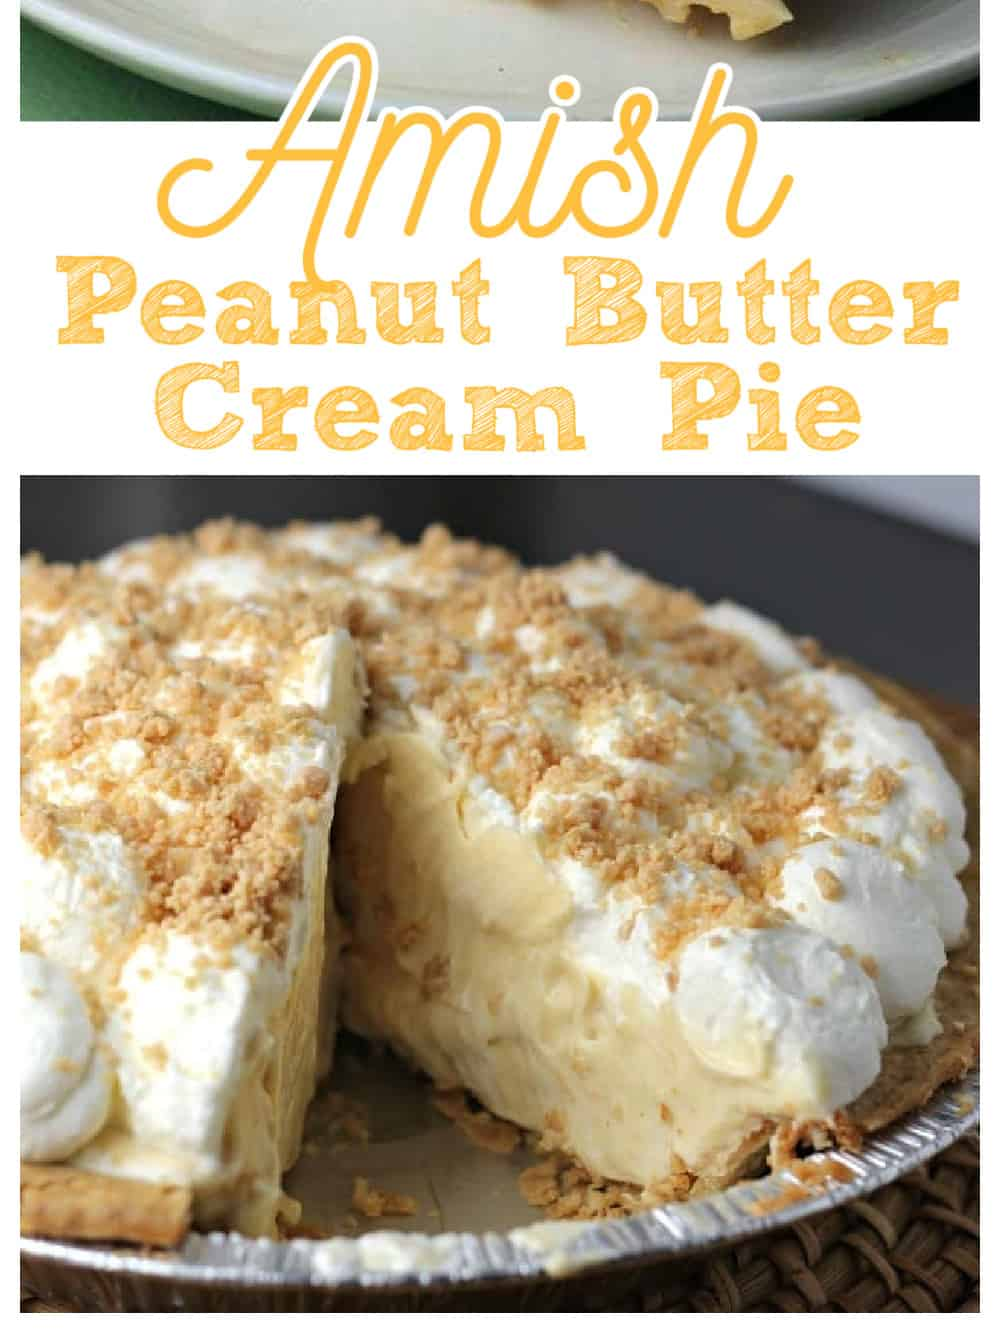 slice of Amish Peanut Butter Cream Pie removed